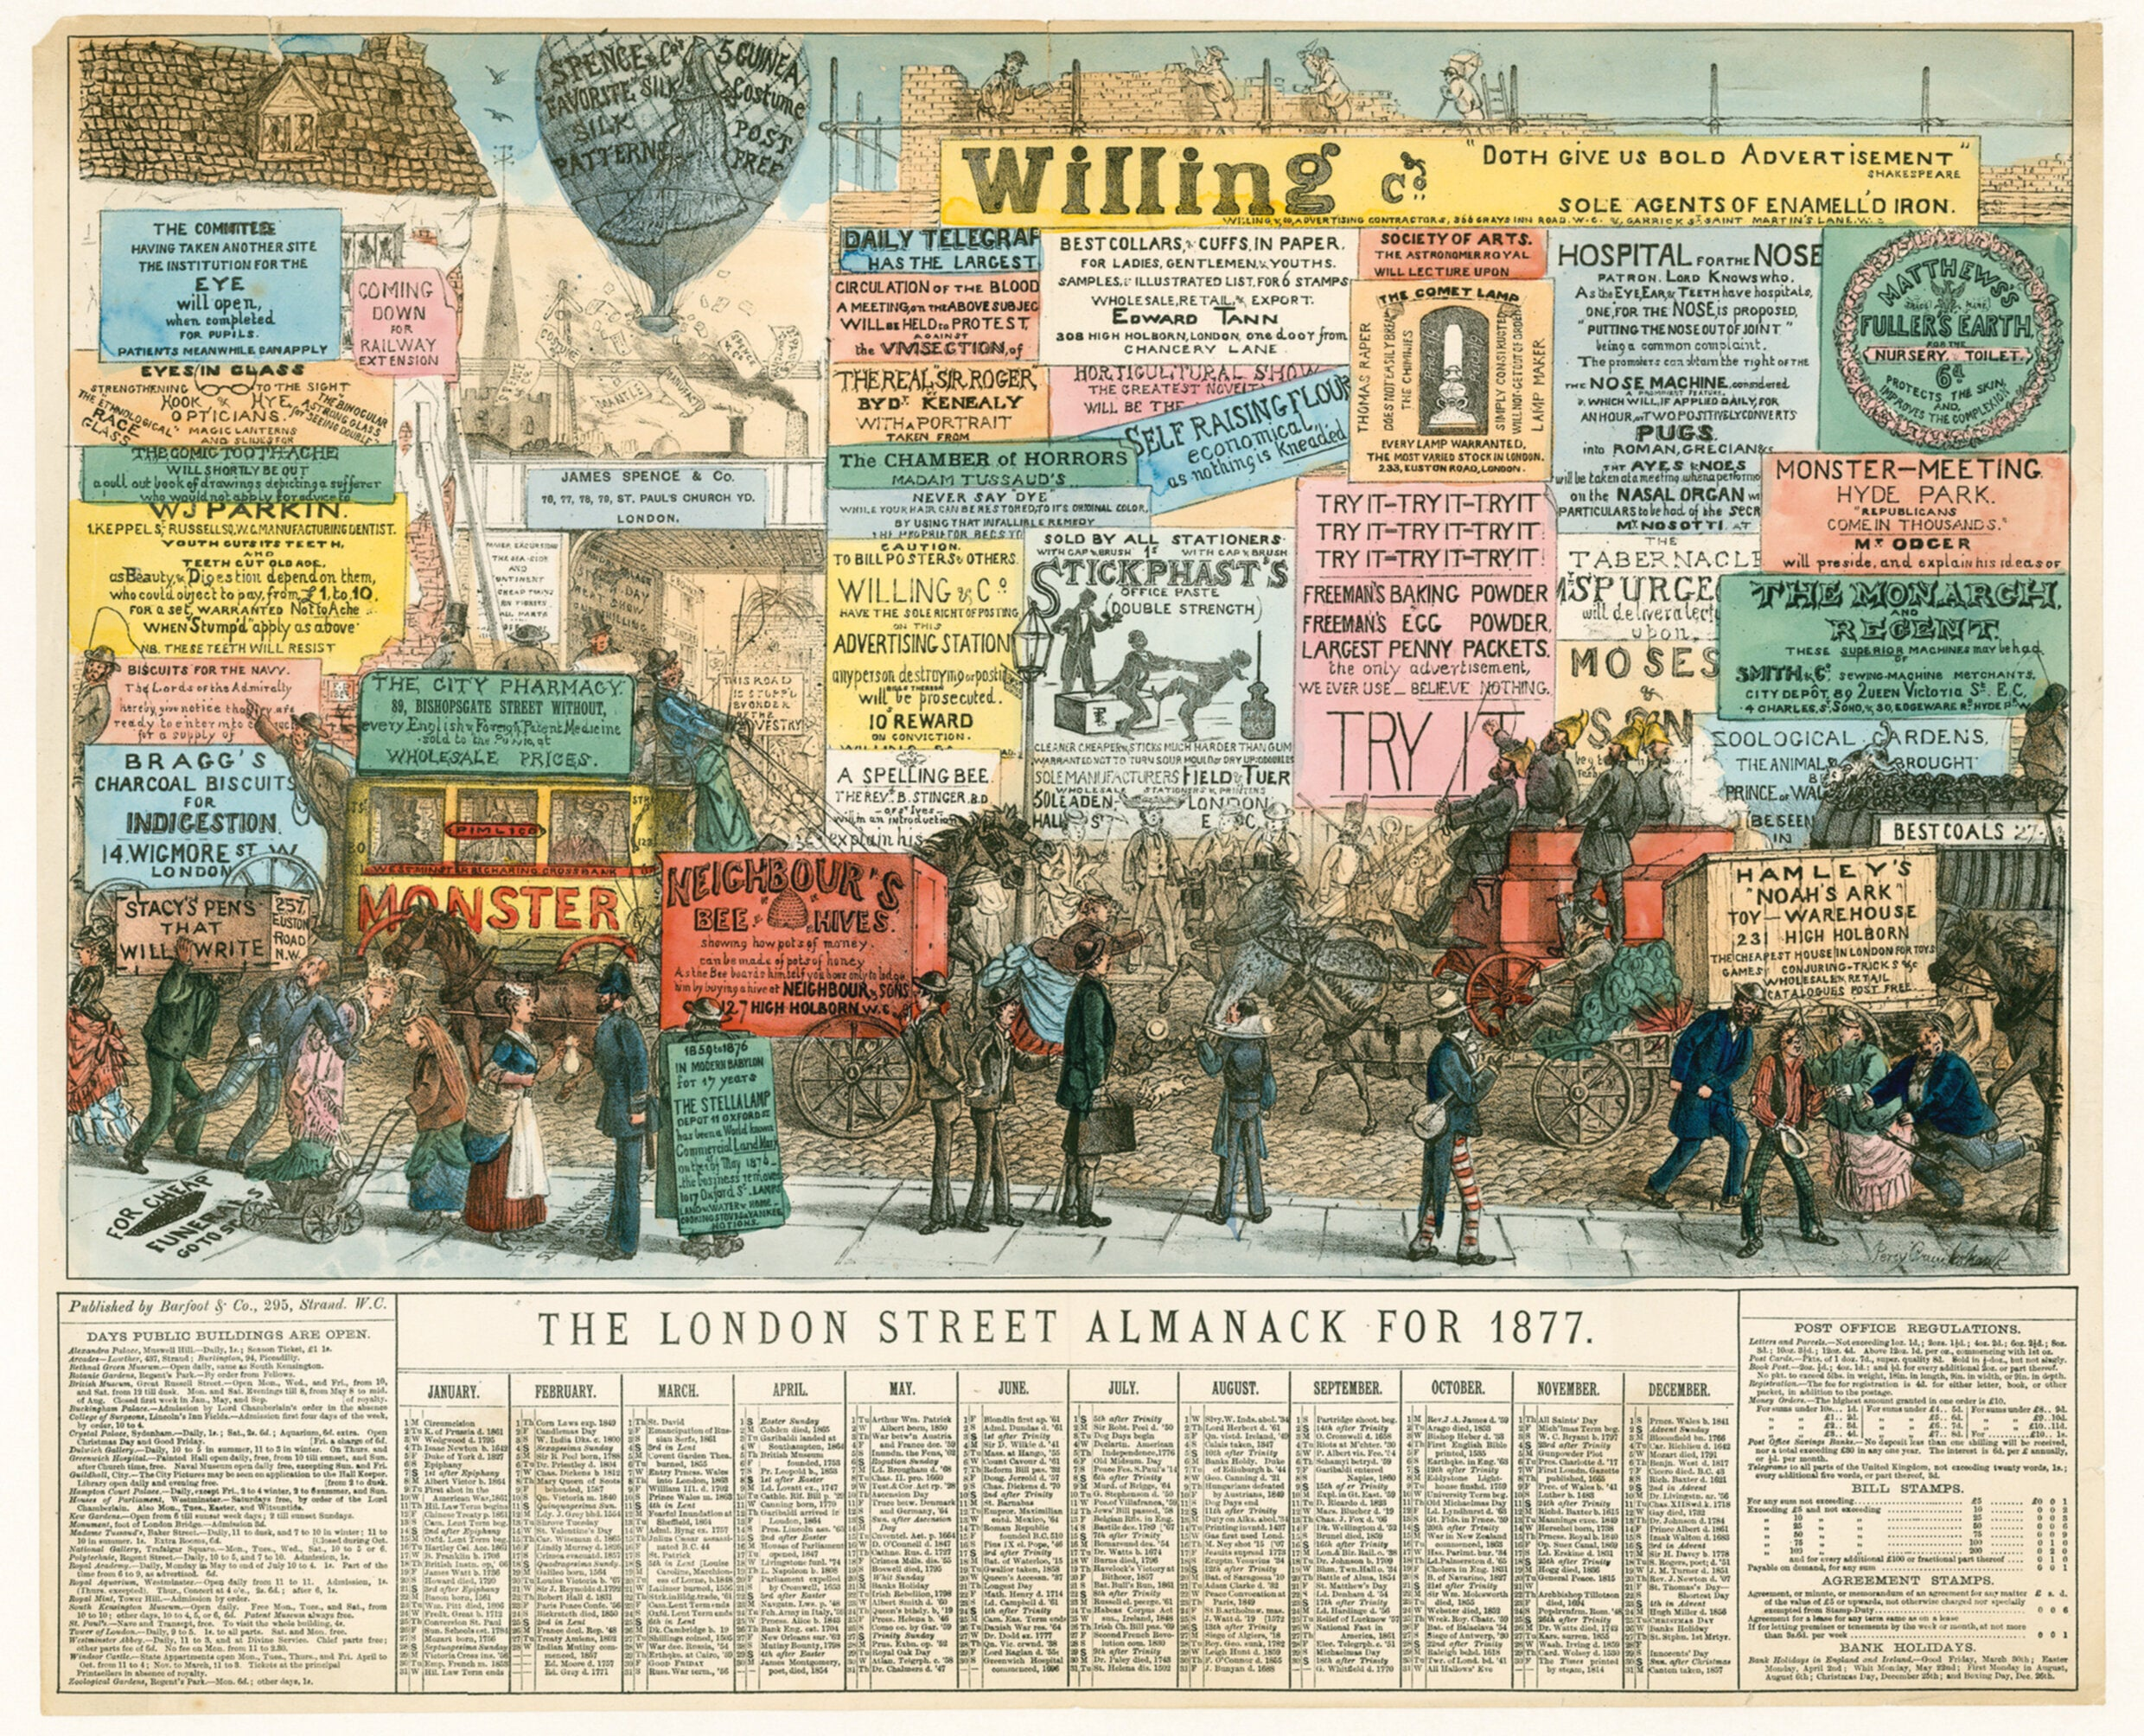 Can the almanack survive in the digital age?